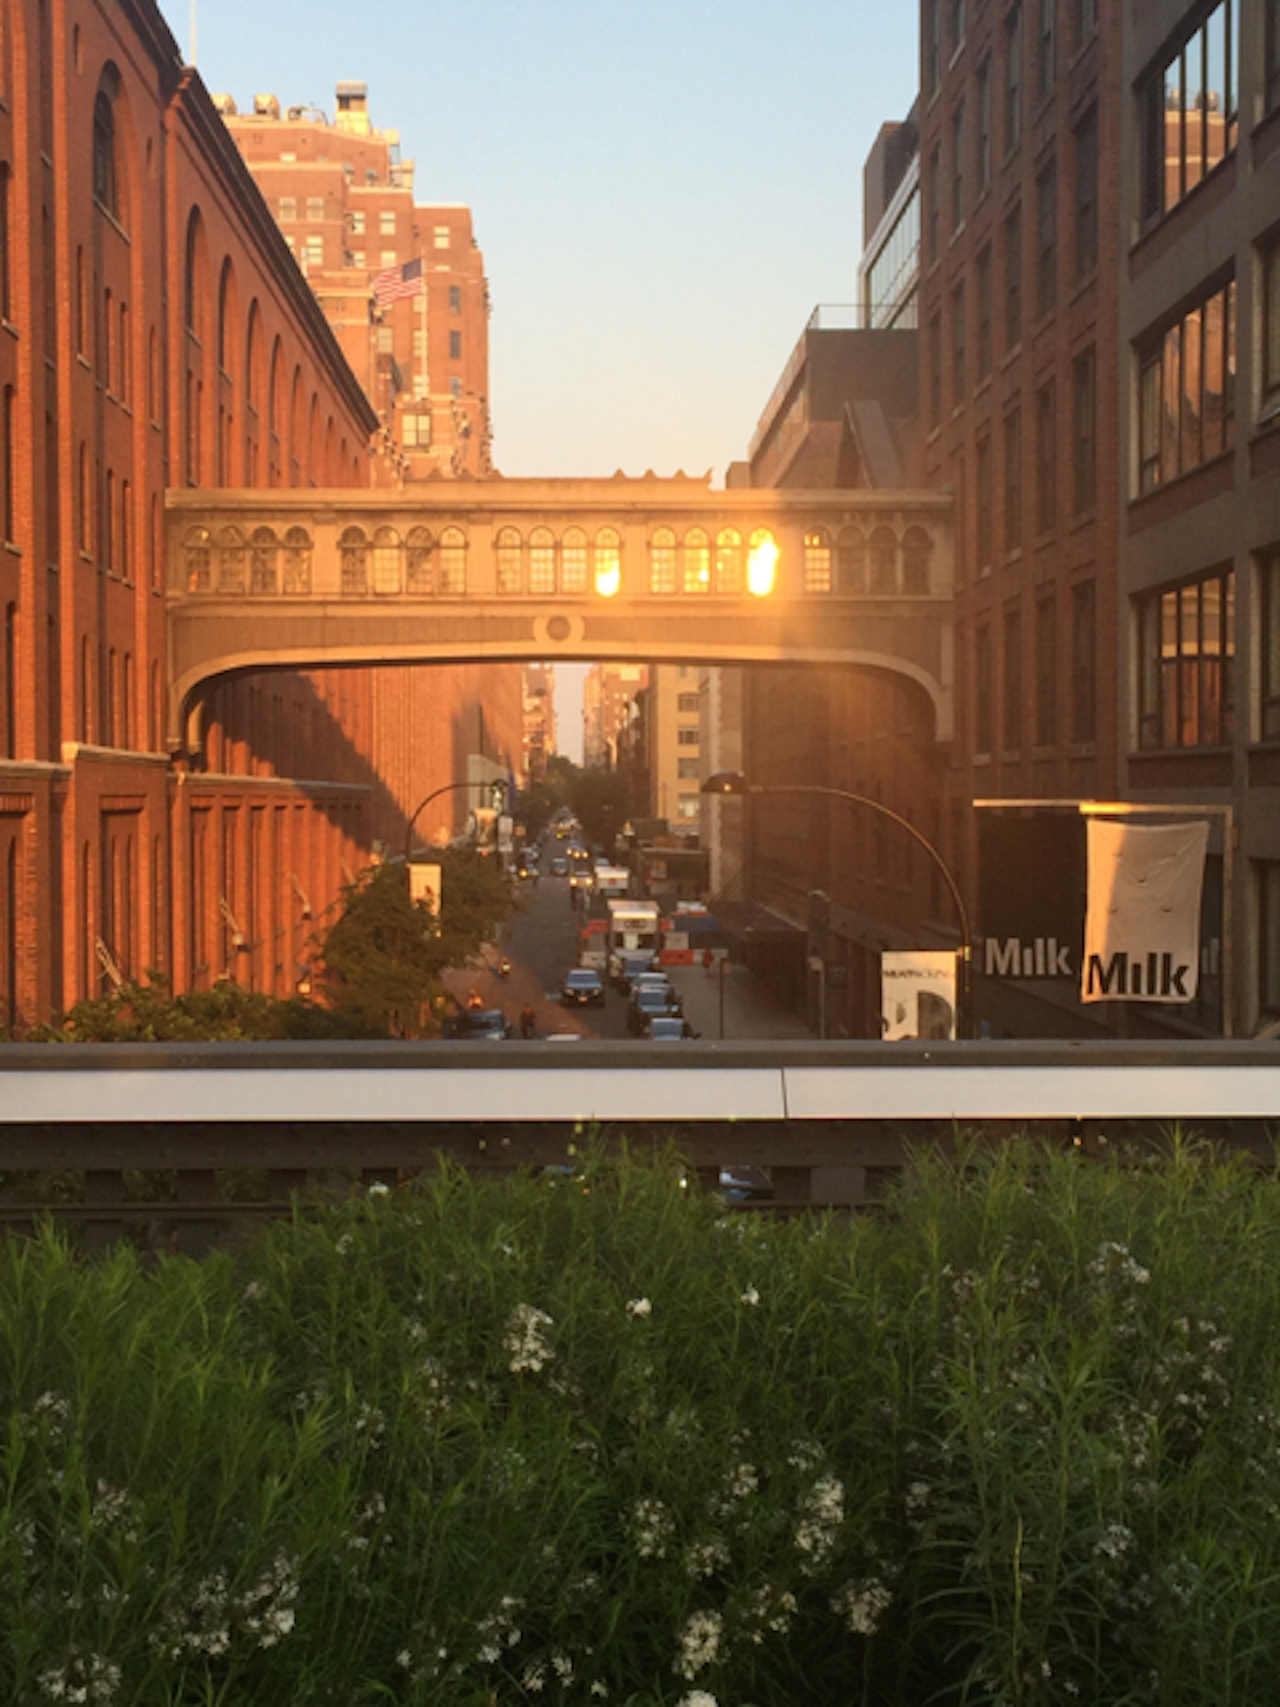 wrapping-up-the-overseas-tour-event-from-the-highline-in-new-york